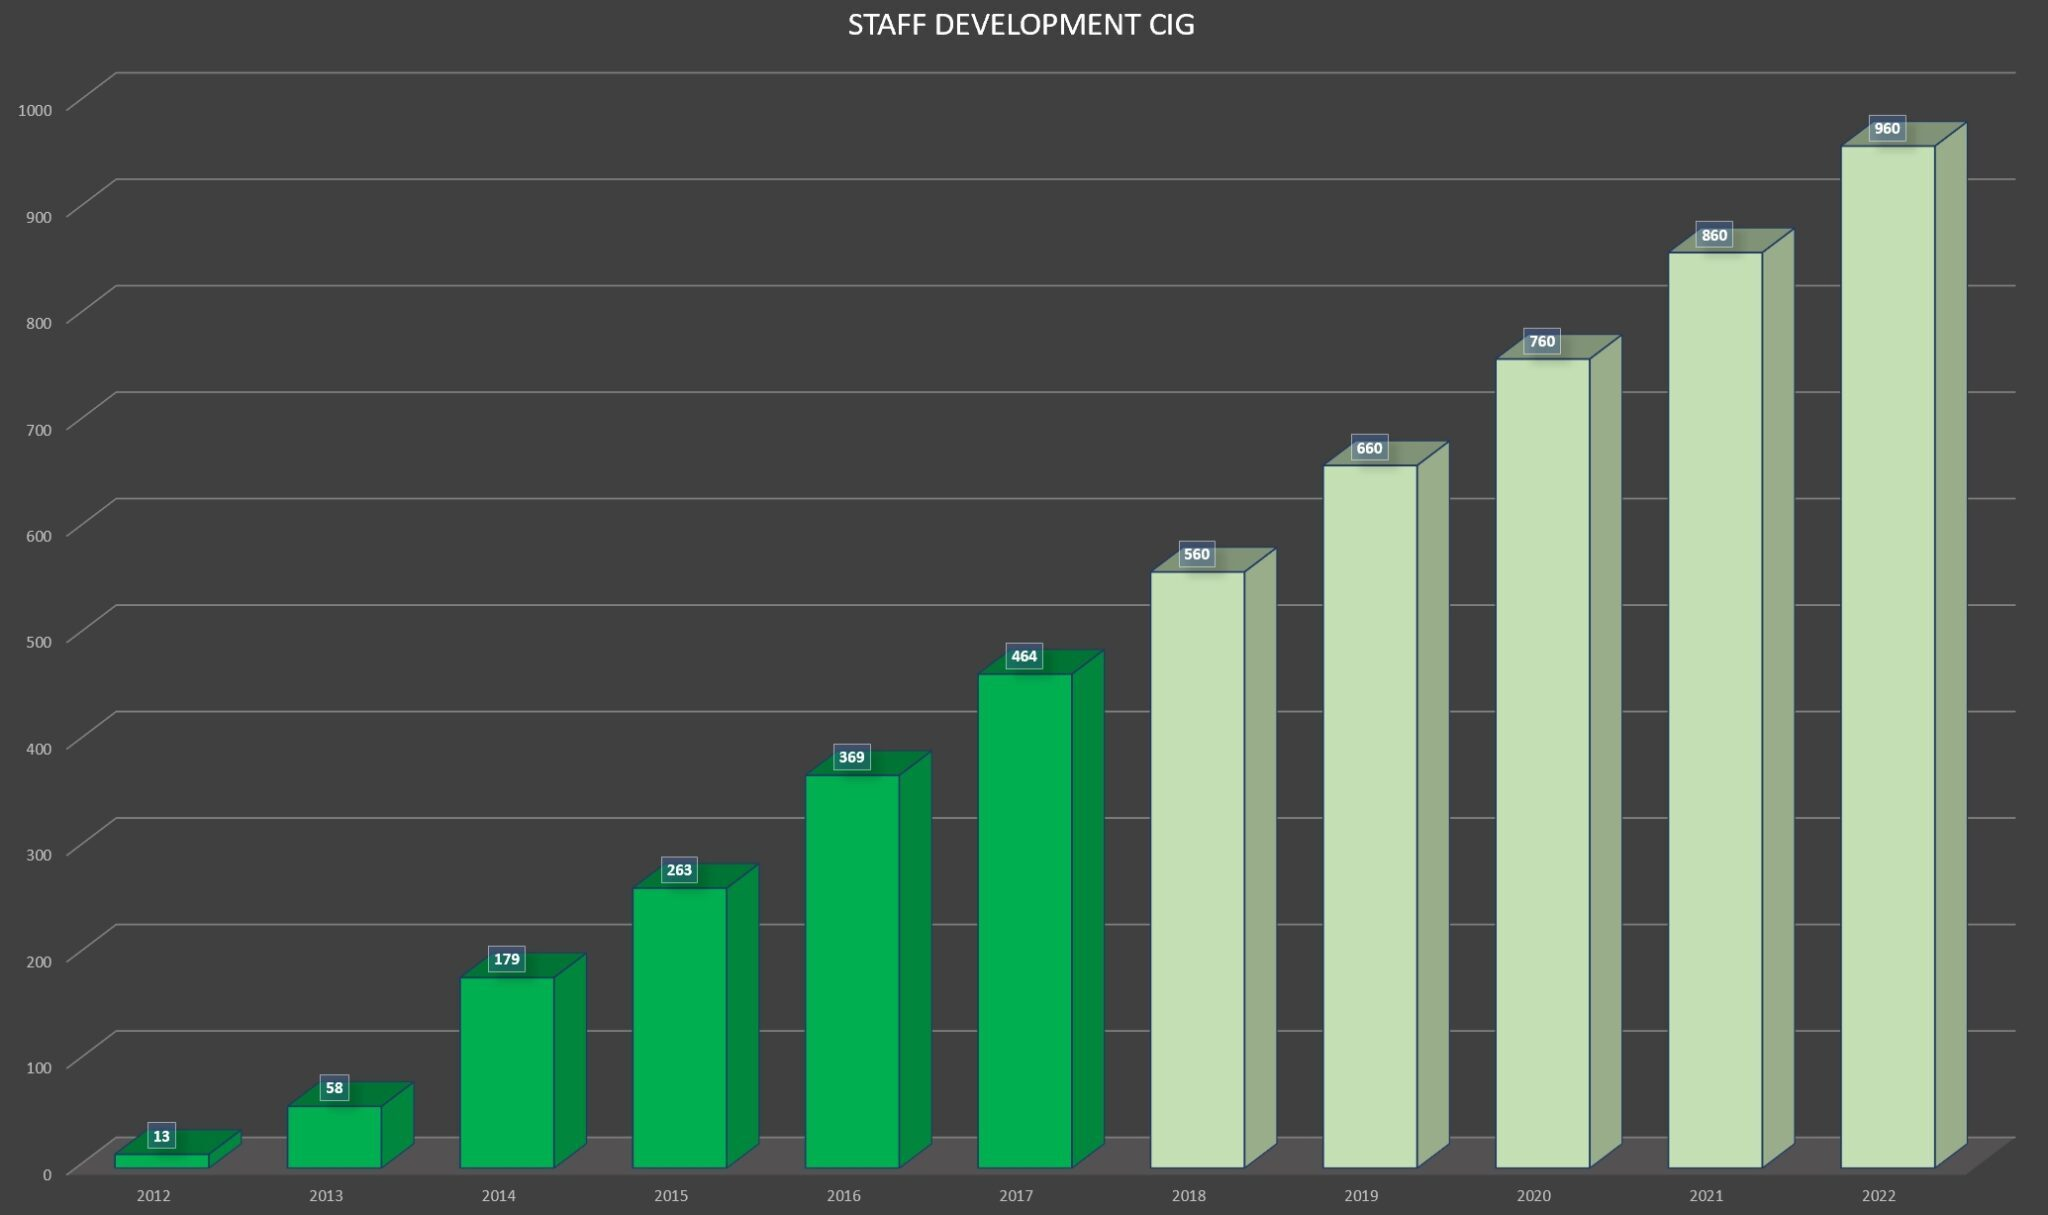 The hiring of new developers at CIG is quite linear. © SPACE4GAMES